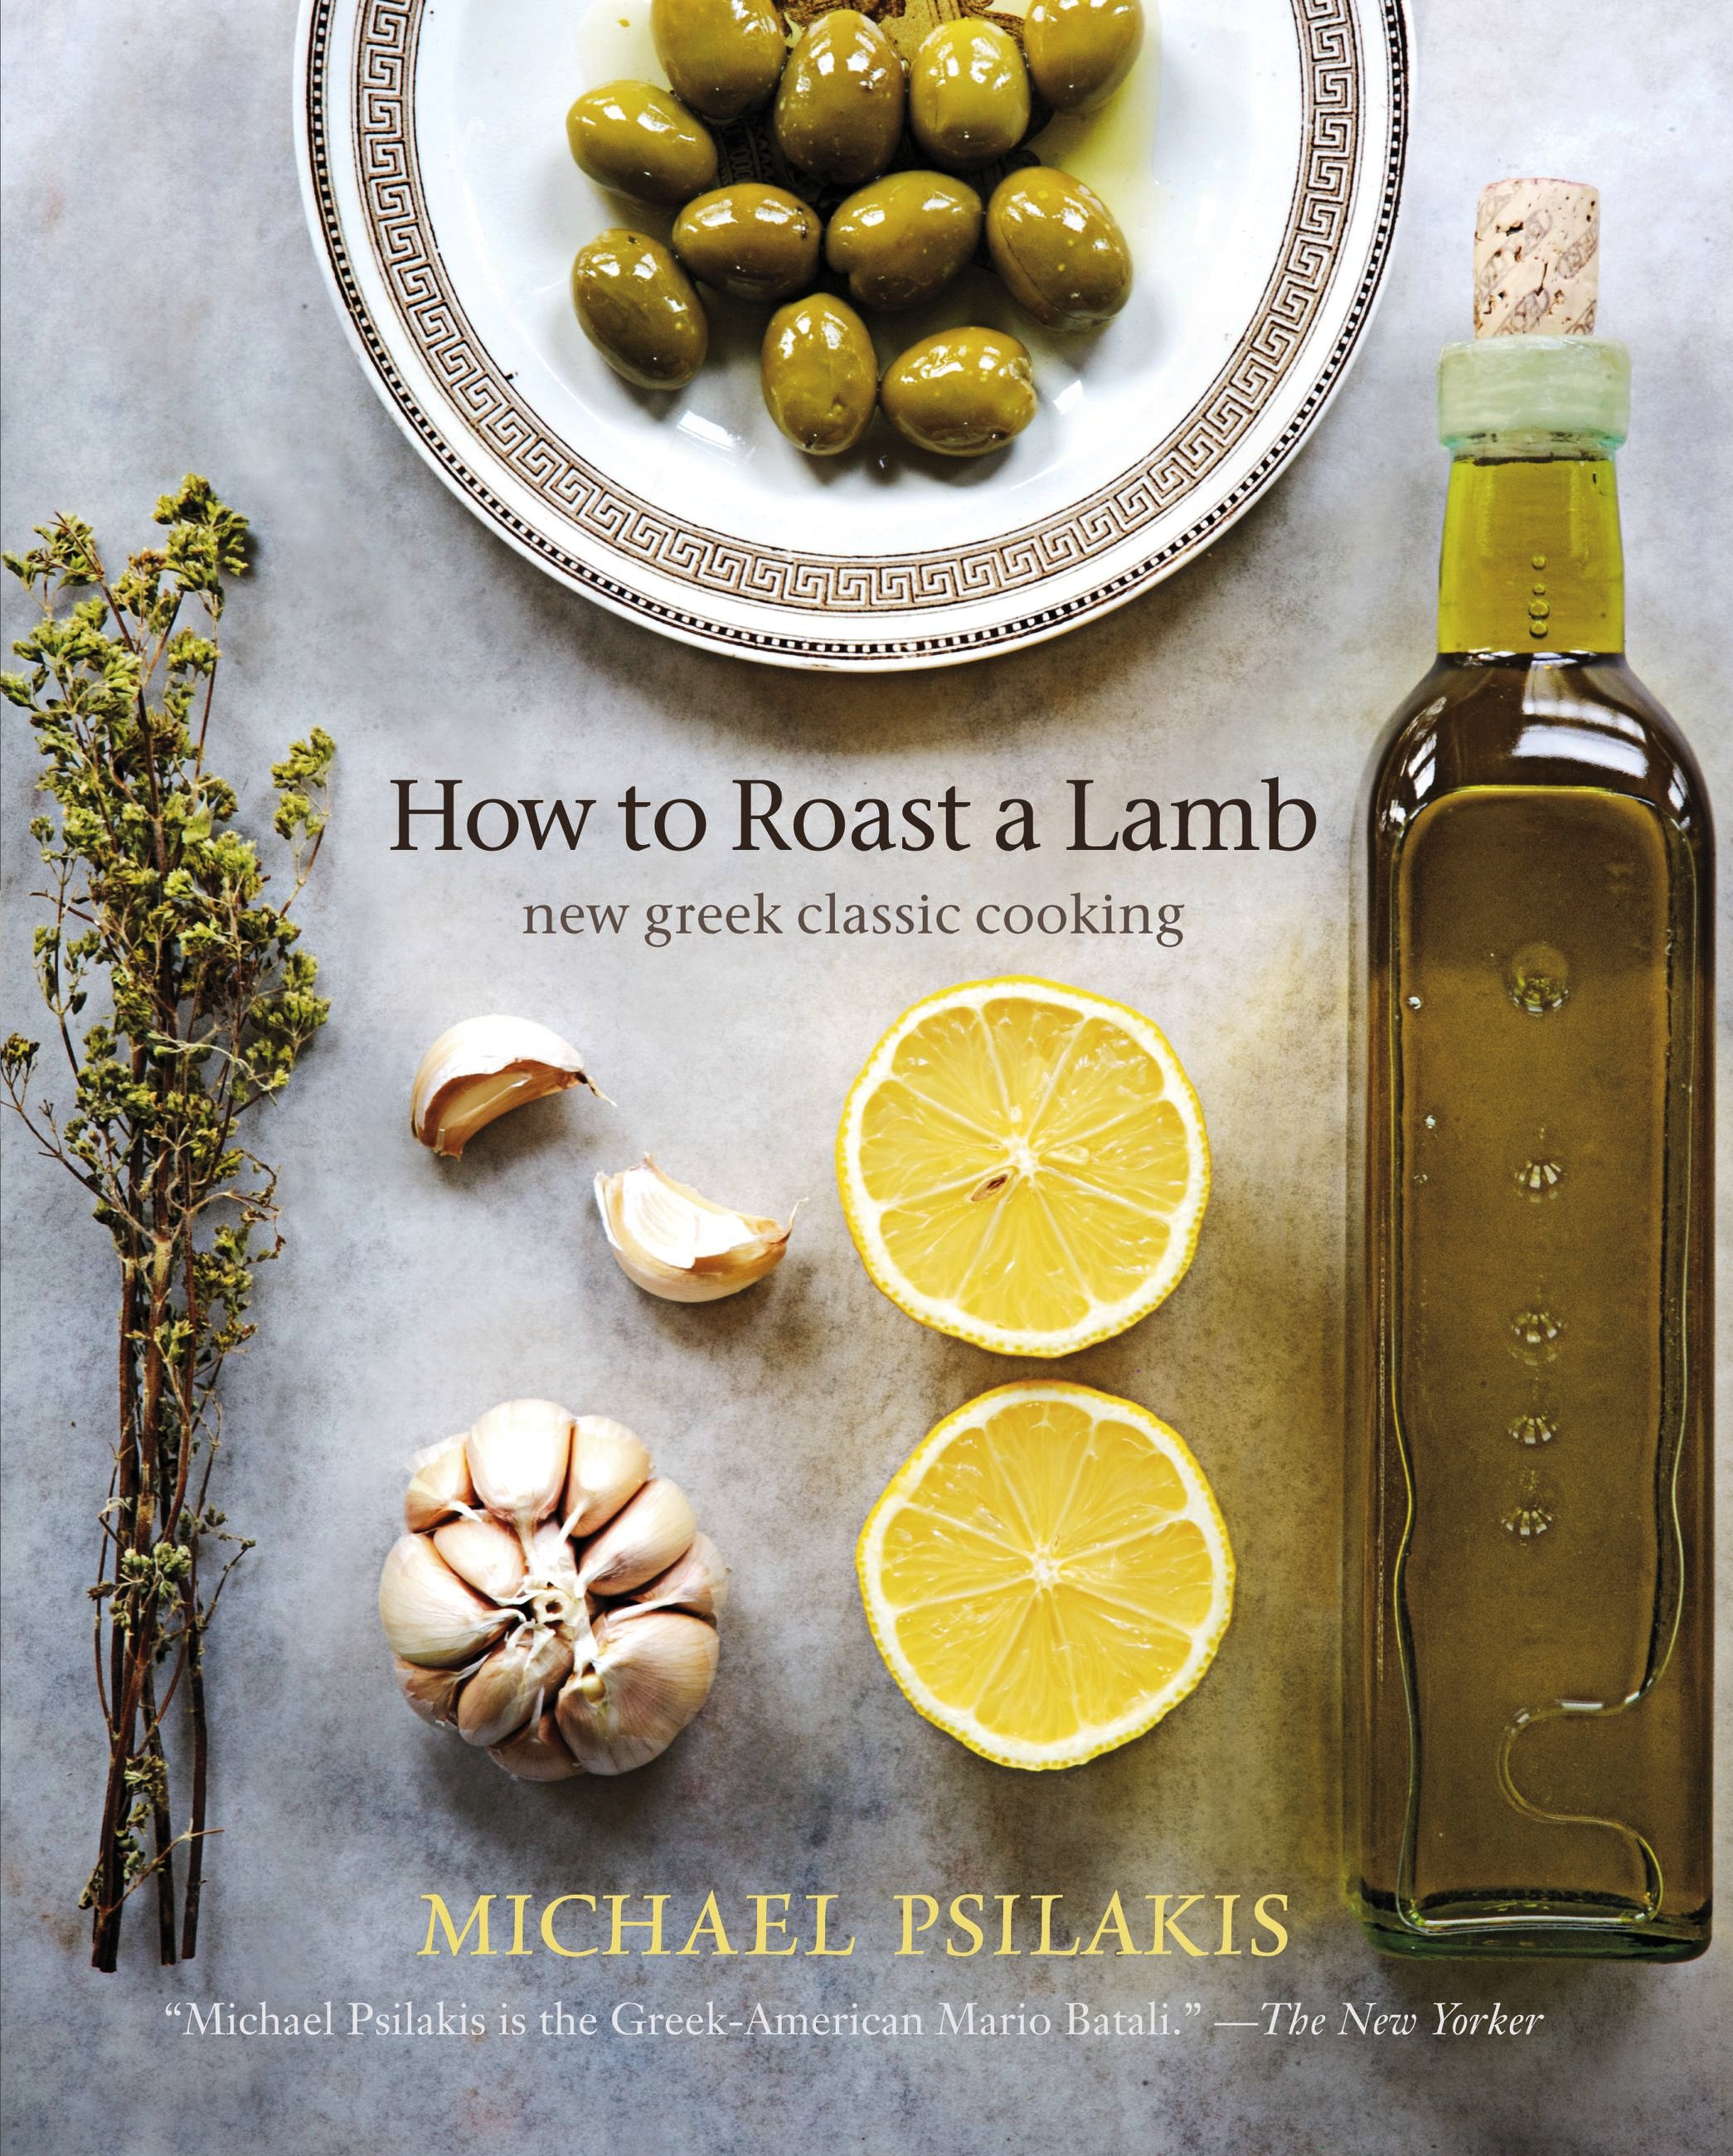 How to Roast a Lamb